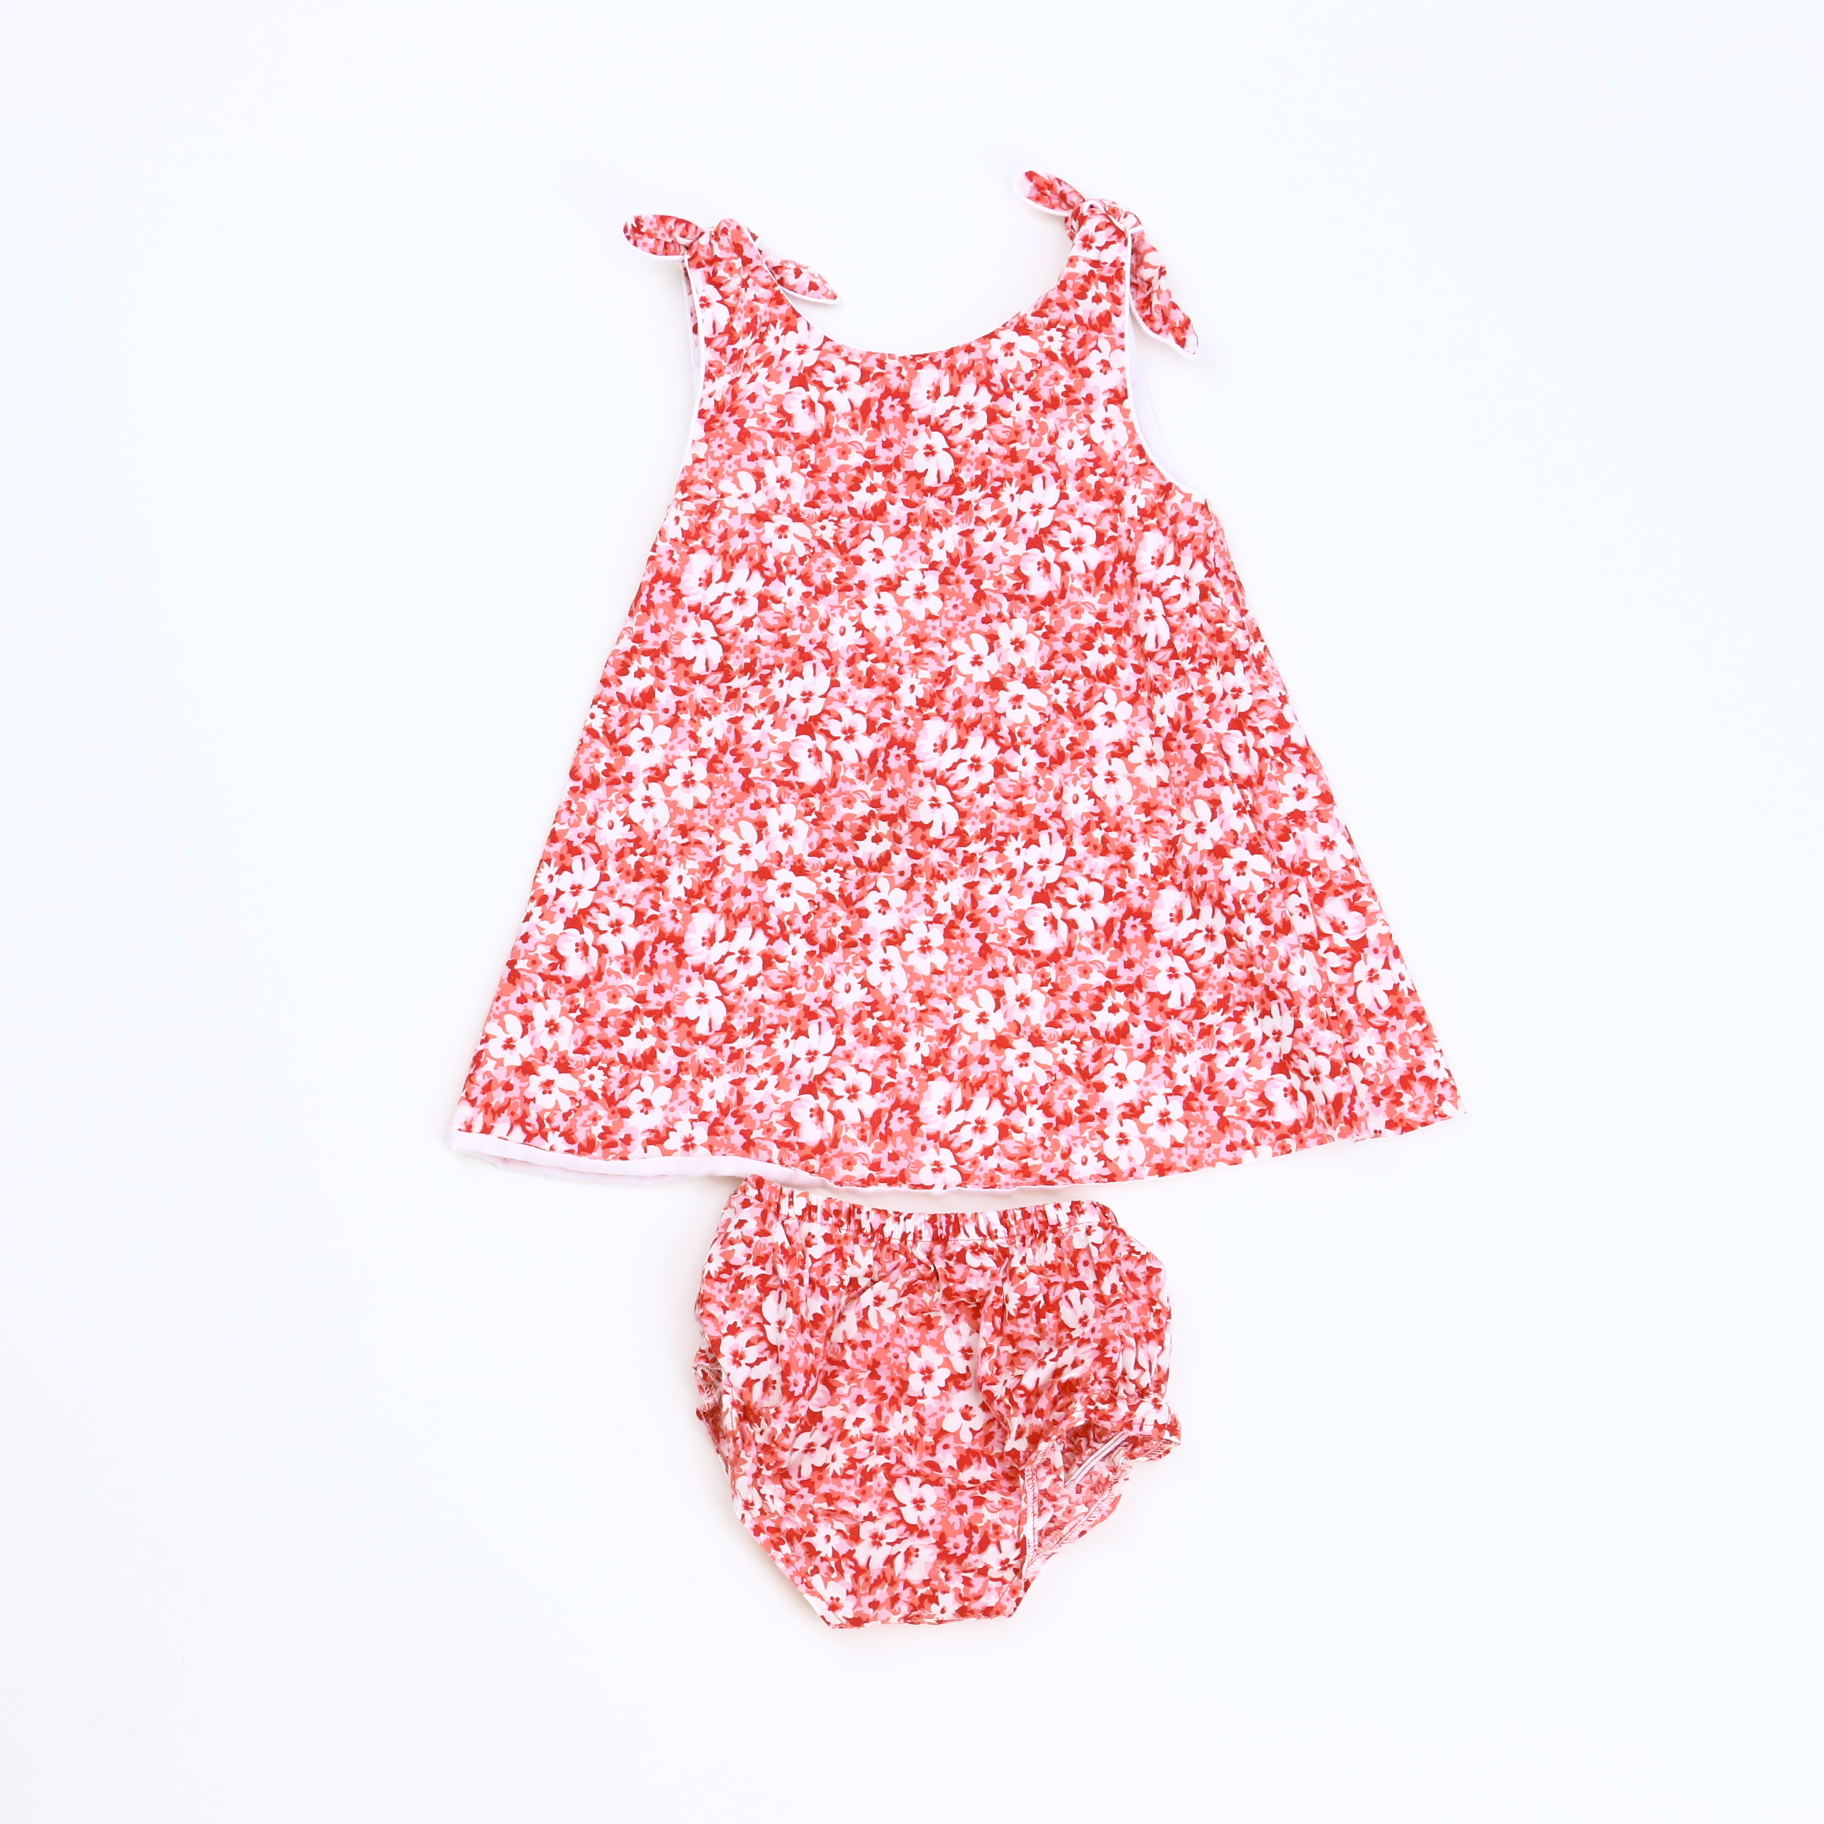 f49d8d475 2-pieces Dress size: 6-9 Months - The Swoondle Society